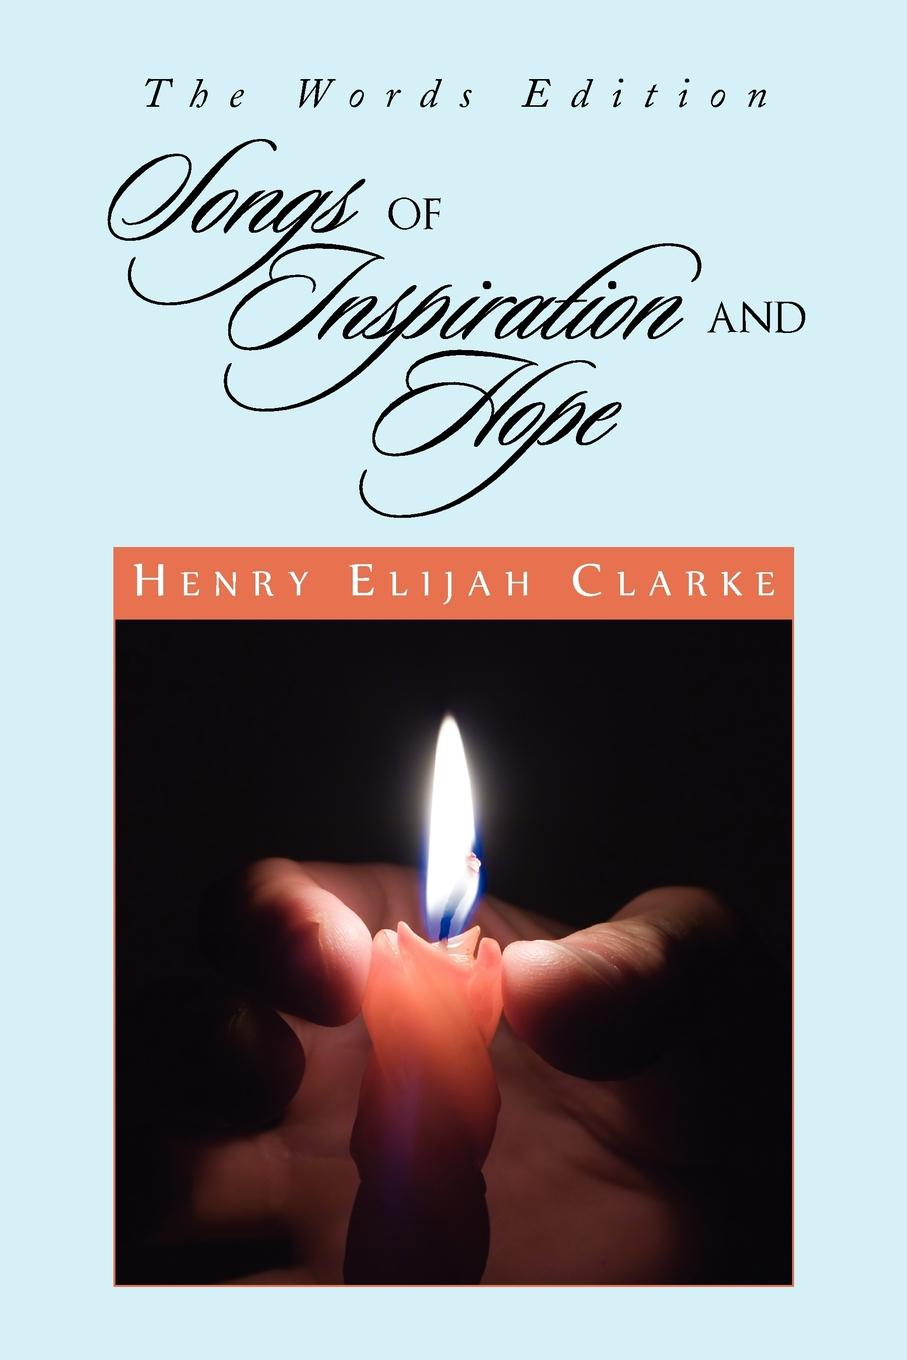 Henry Elijah Clarke Songs of Inspiration and Hope karyl j leslie rays of hope poems of faith and inspiration